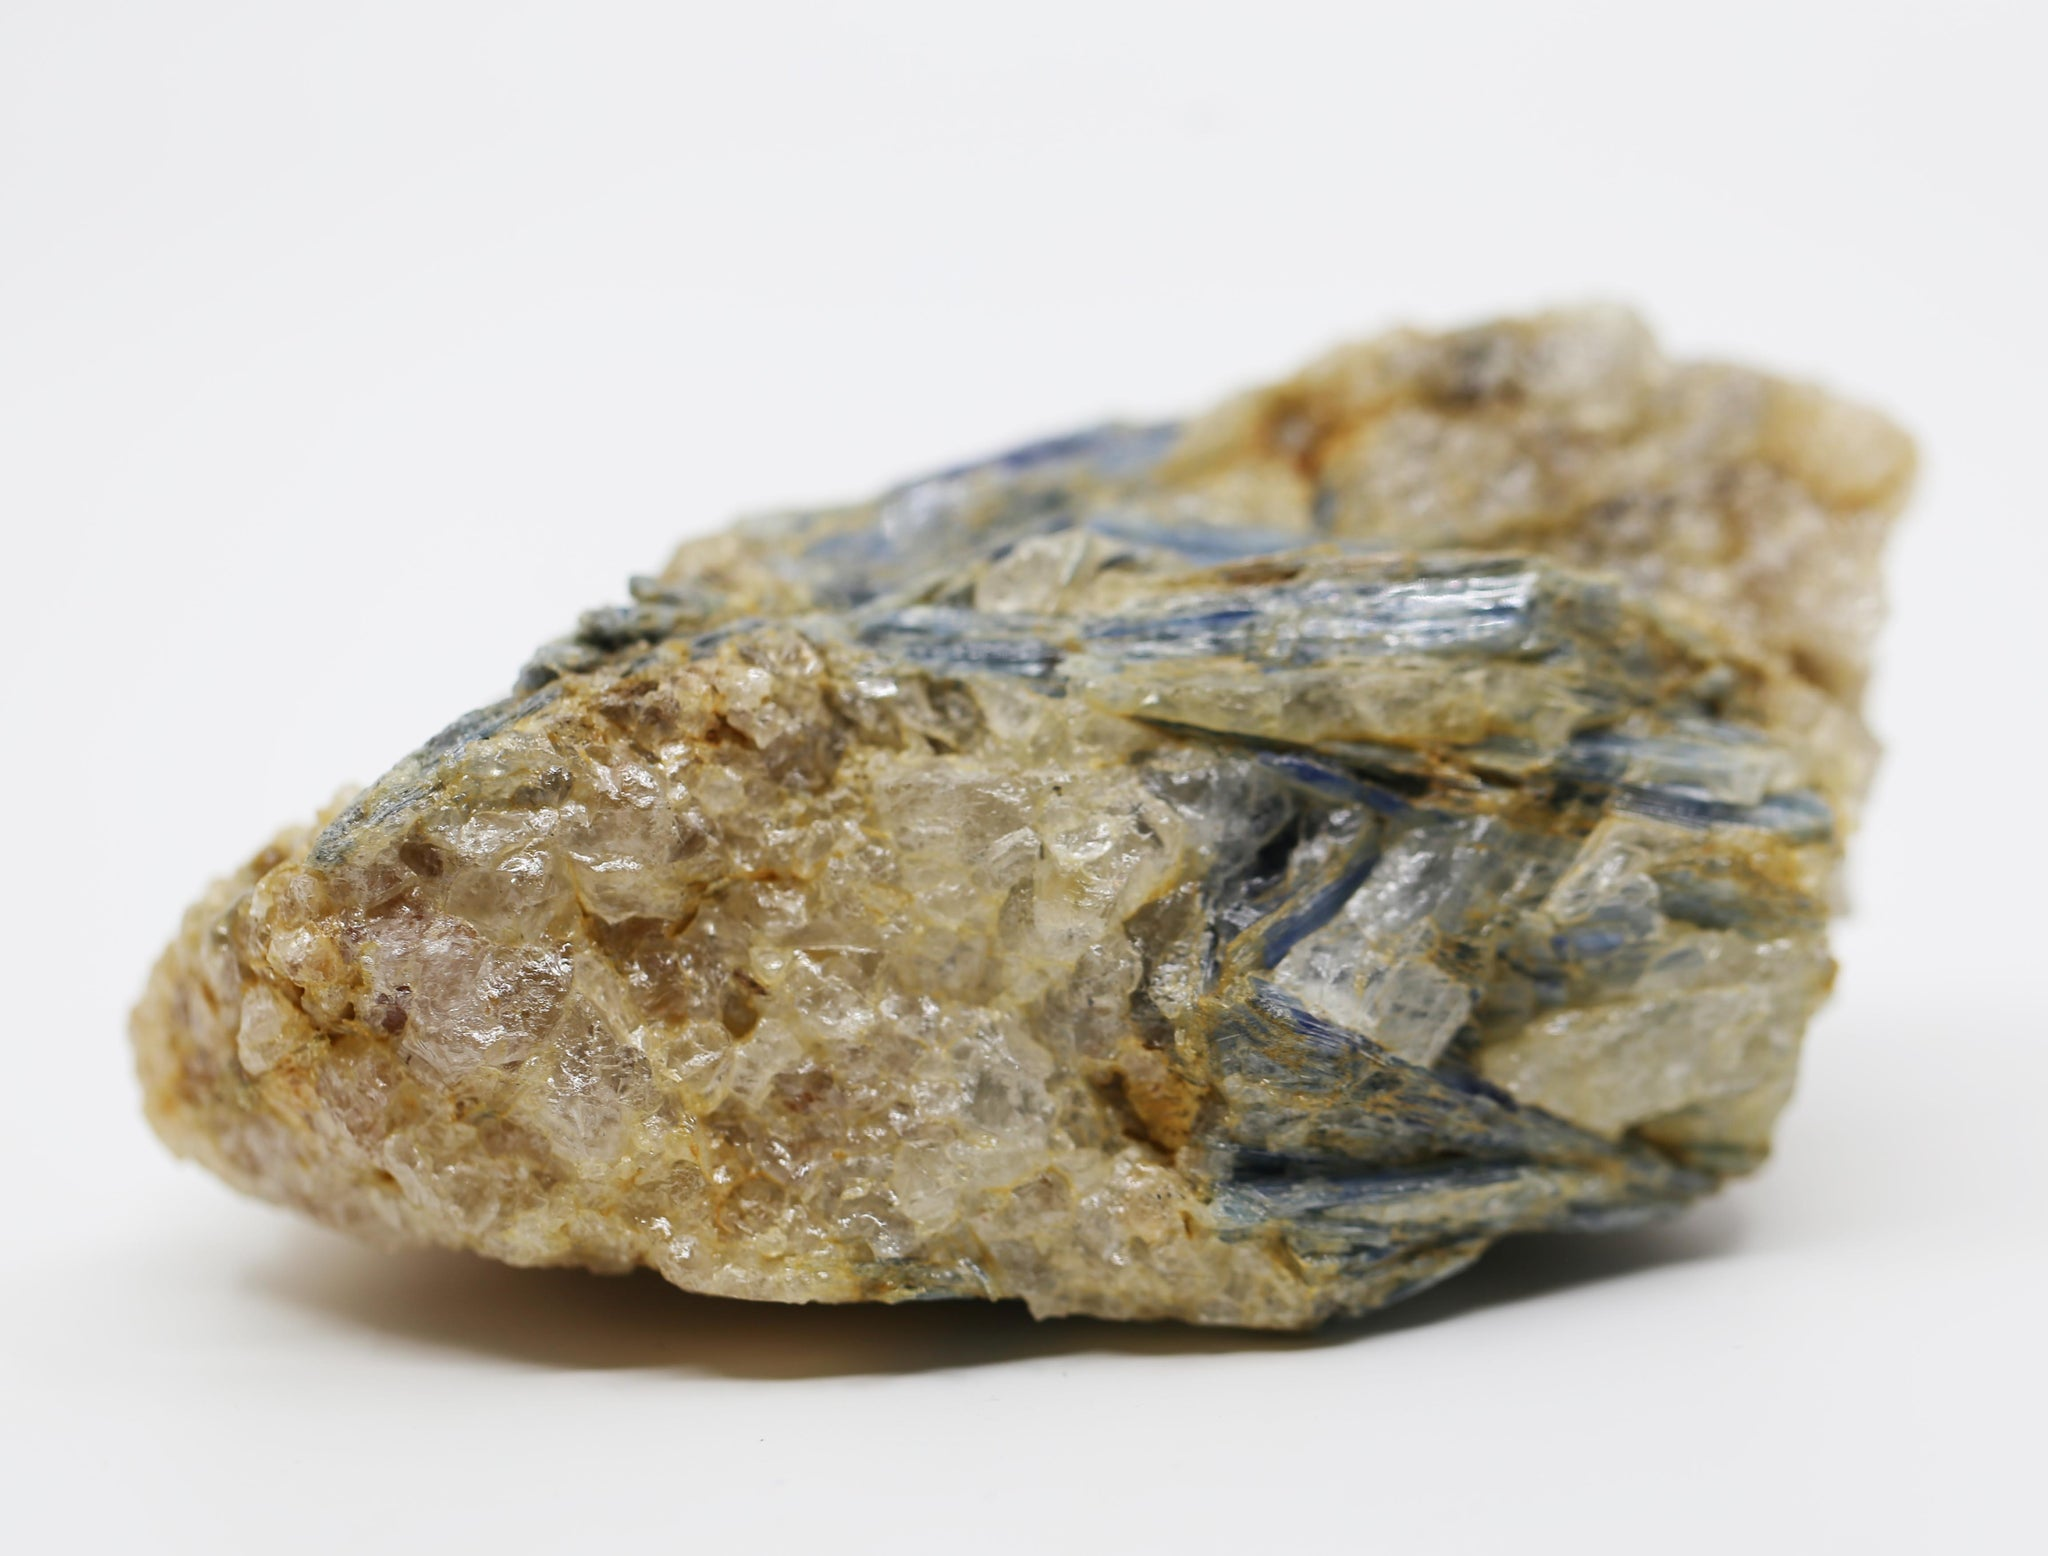 Blue Kyanite with Mica and Calcite Freeform